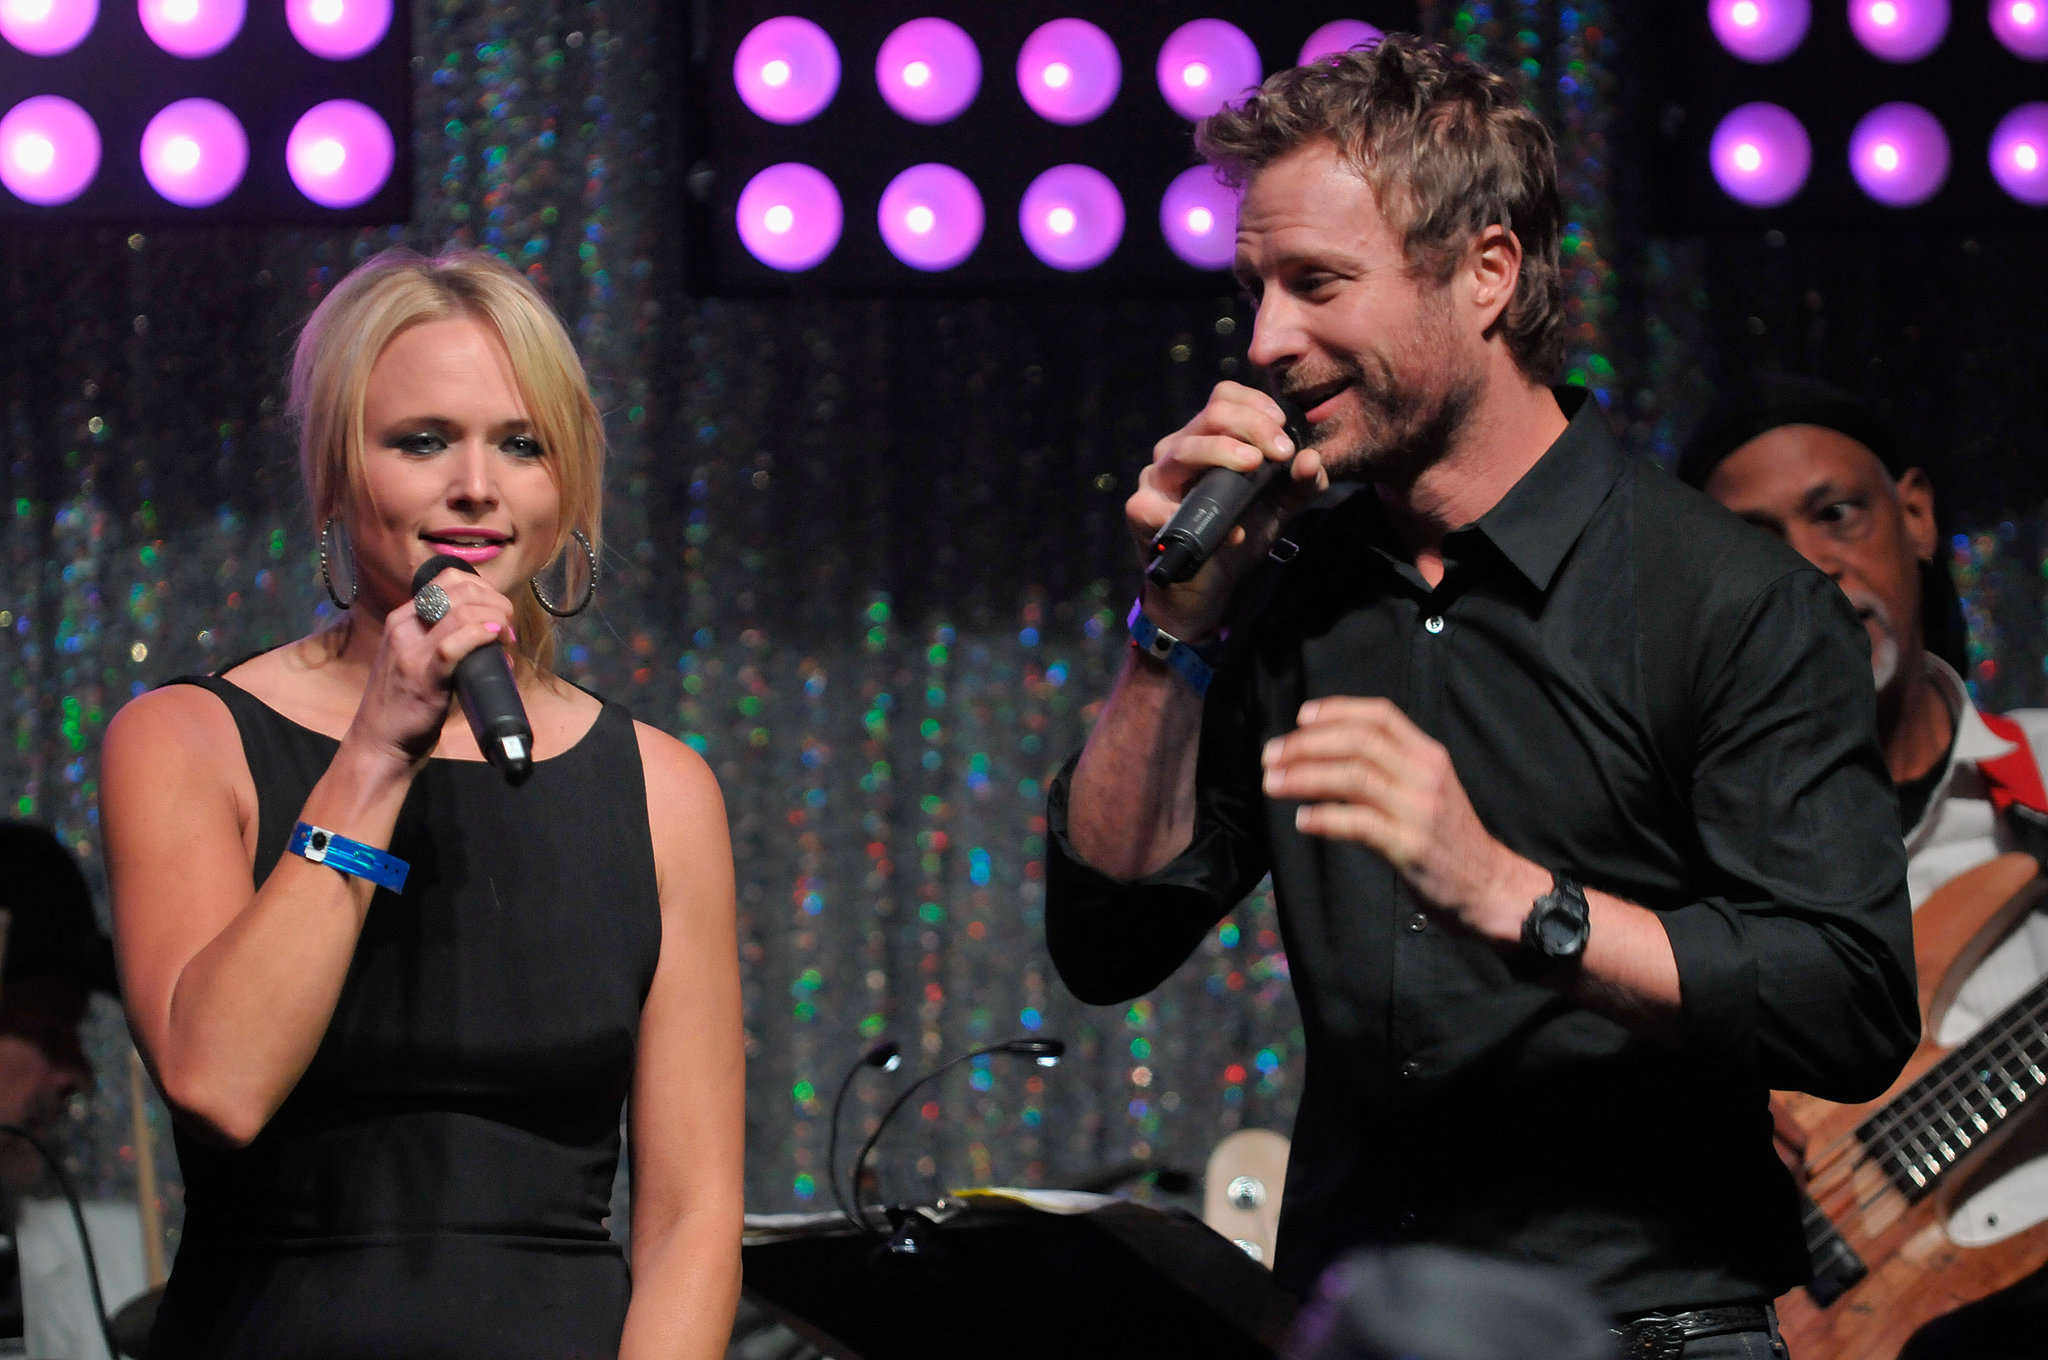 Miranda Lambert took the stage with Dierks Bentley at the Barnstable Brown event on Friday.